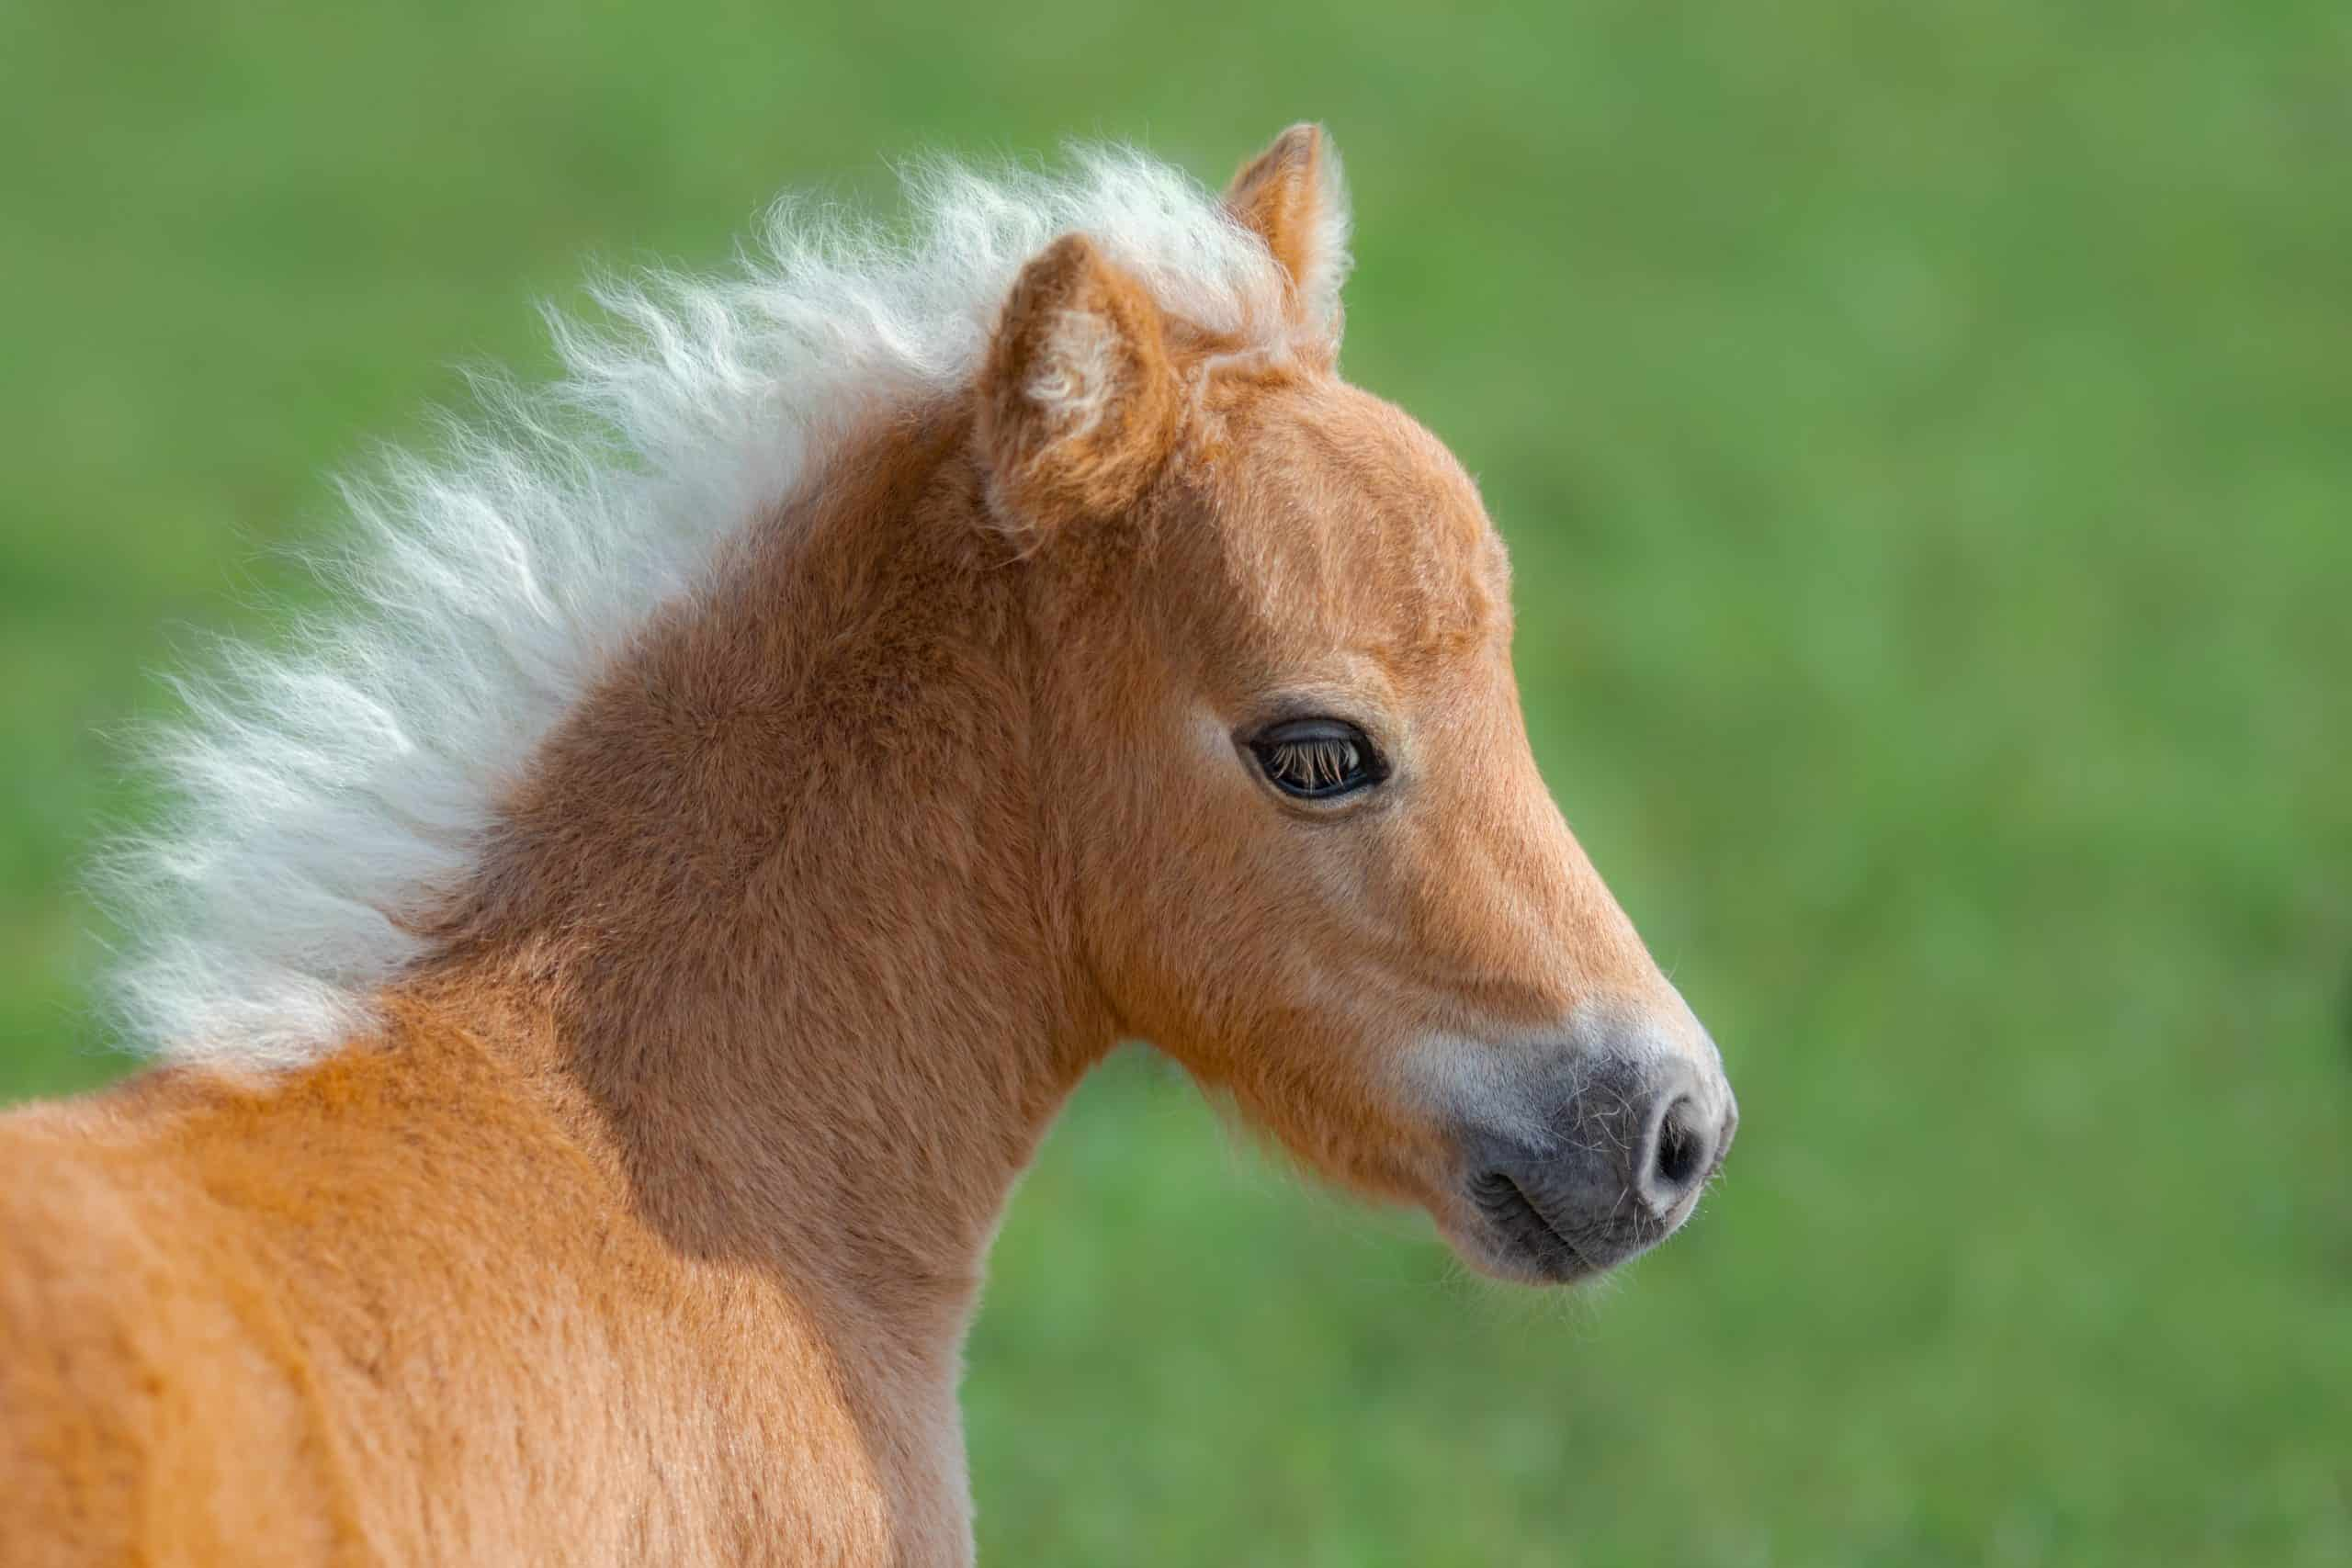 American Miniature Horse. Portrait close up of palomino foal on blurred green background.